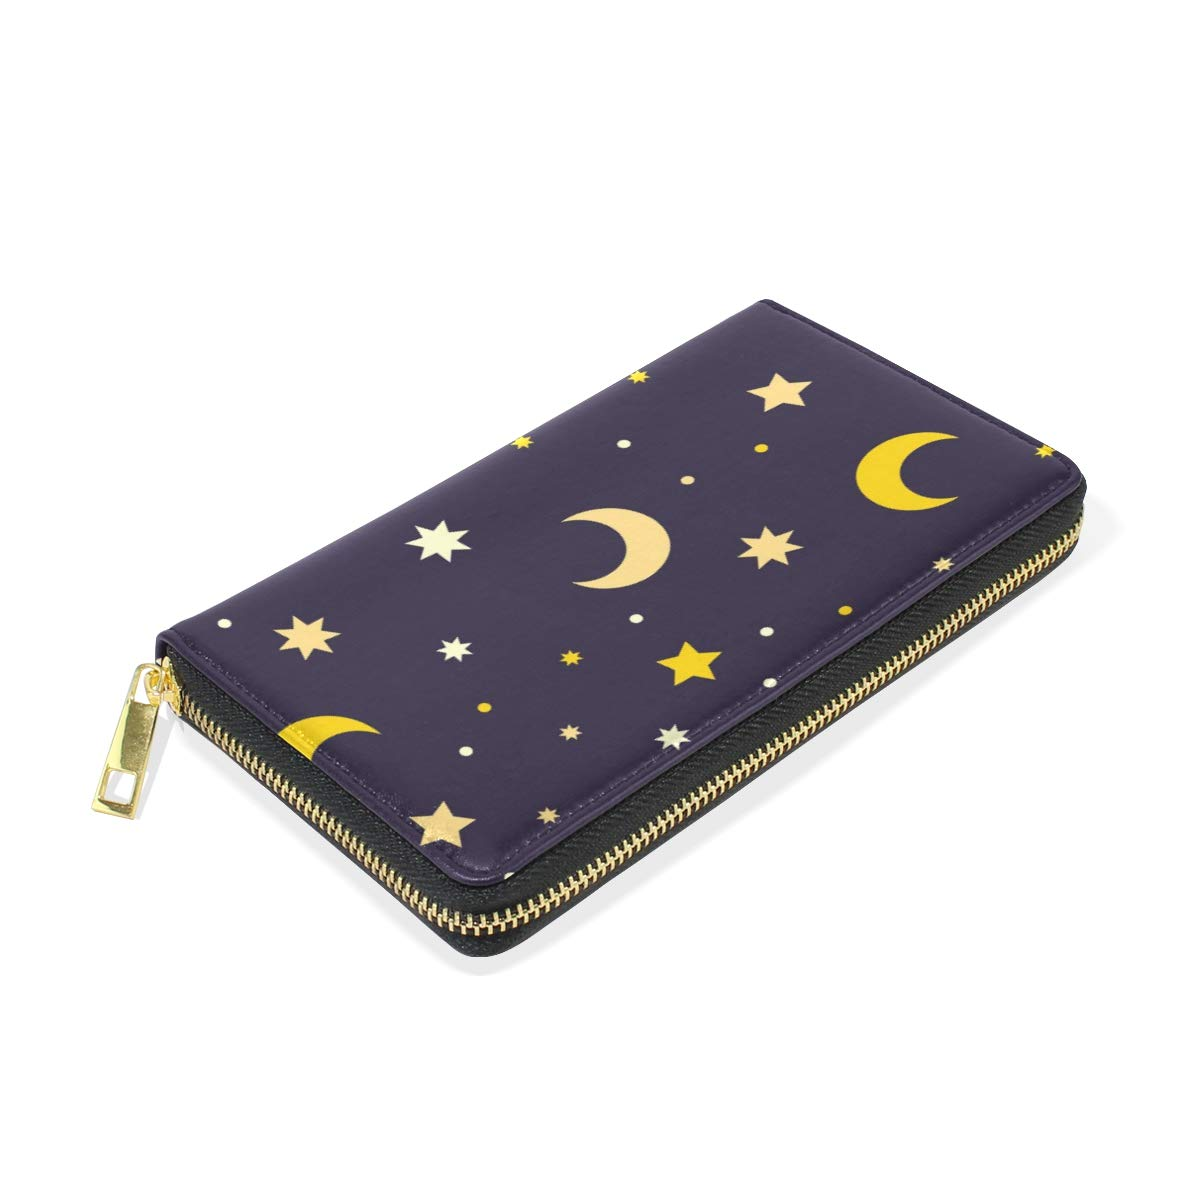 Women Wallet Coin Purse Phone Clutch Pouch Cash Bag Female Girl Card Change Holder Organizer Storage Key Hold Leather Elegant Handbag Party Birthday Gift Star Moon Pattern